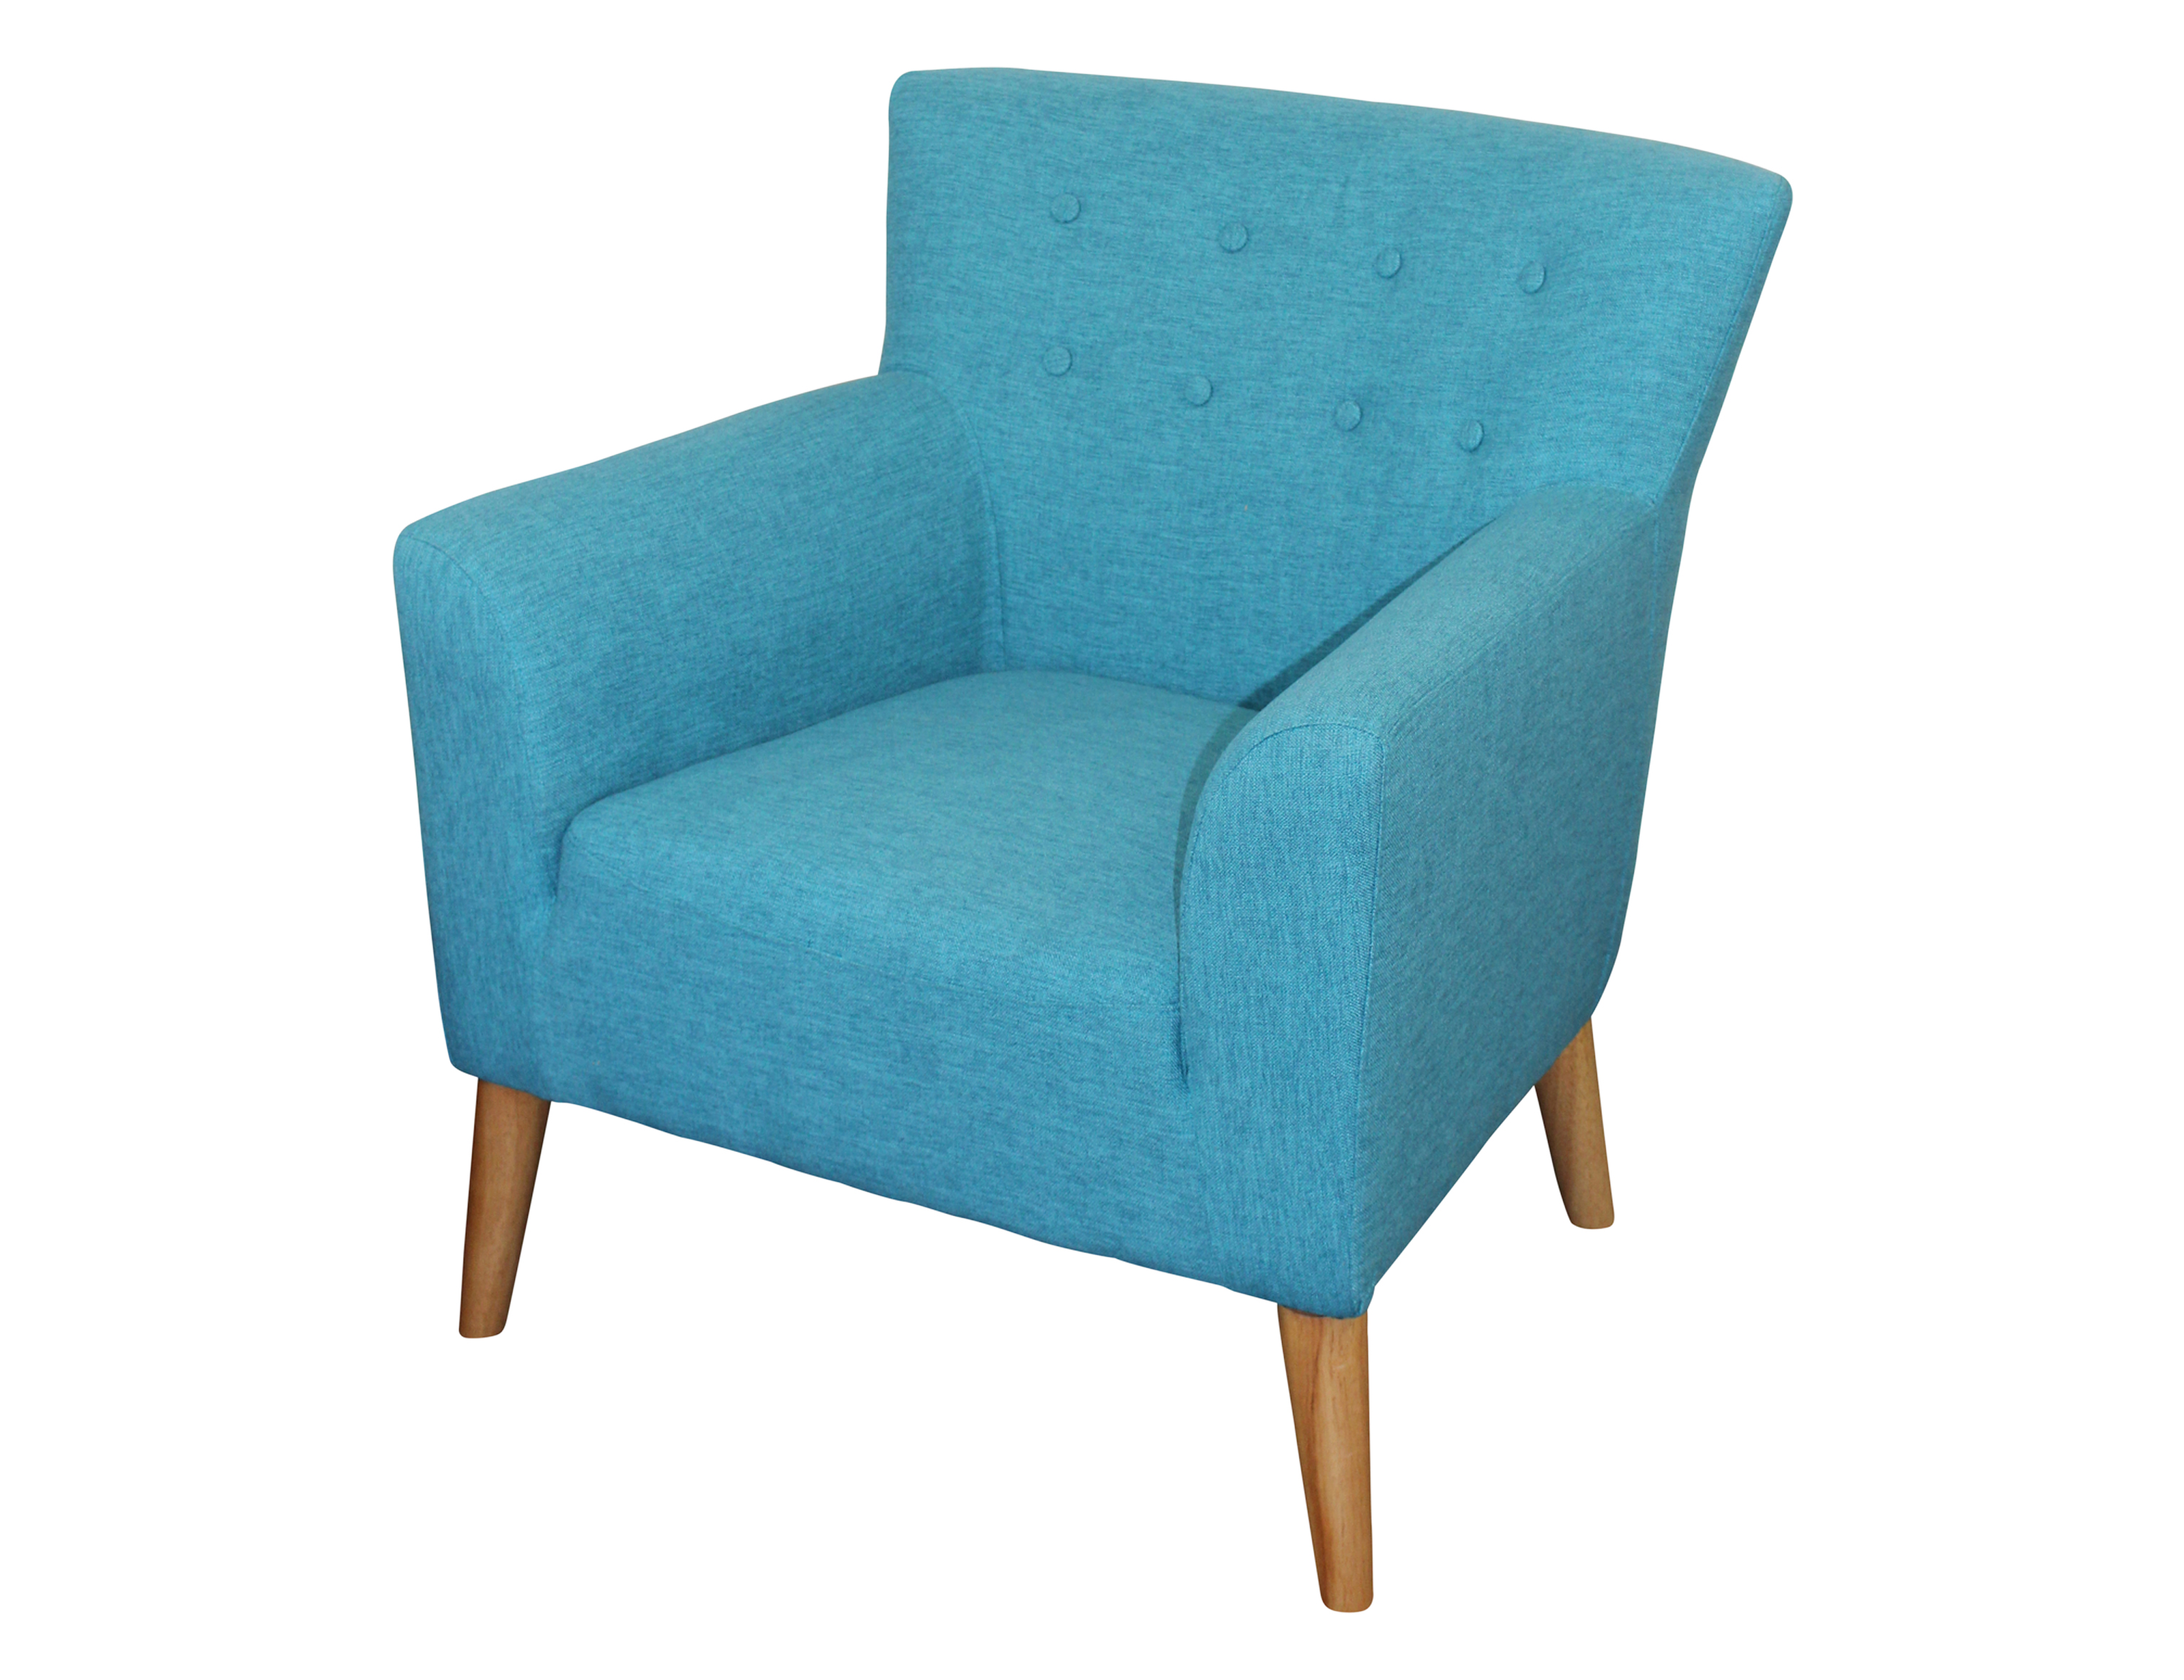 Teal Chair Jett Chair 81 X 79 X 75 Fiesta Teal Fabric Berton Furniture